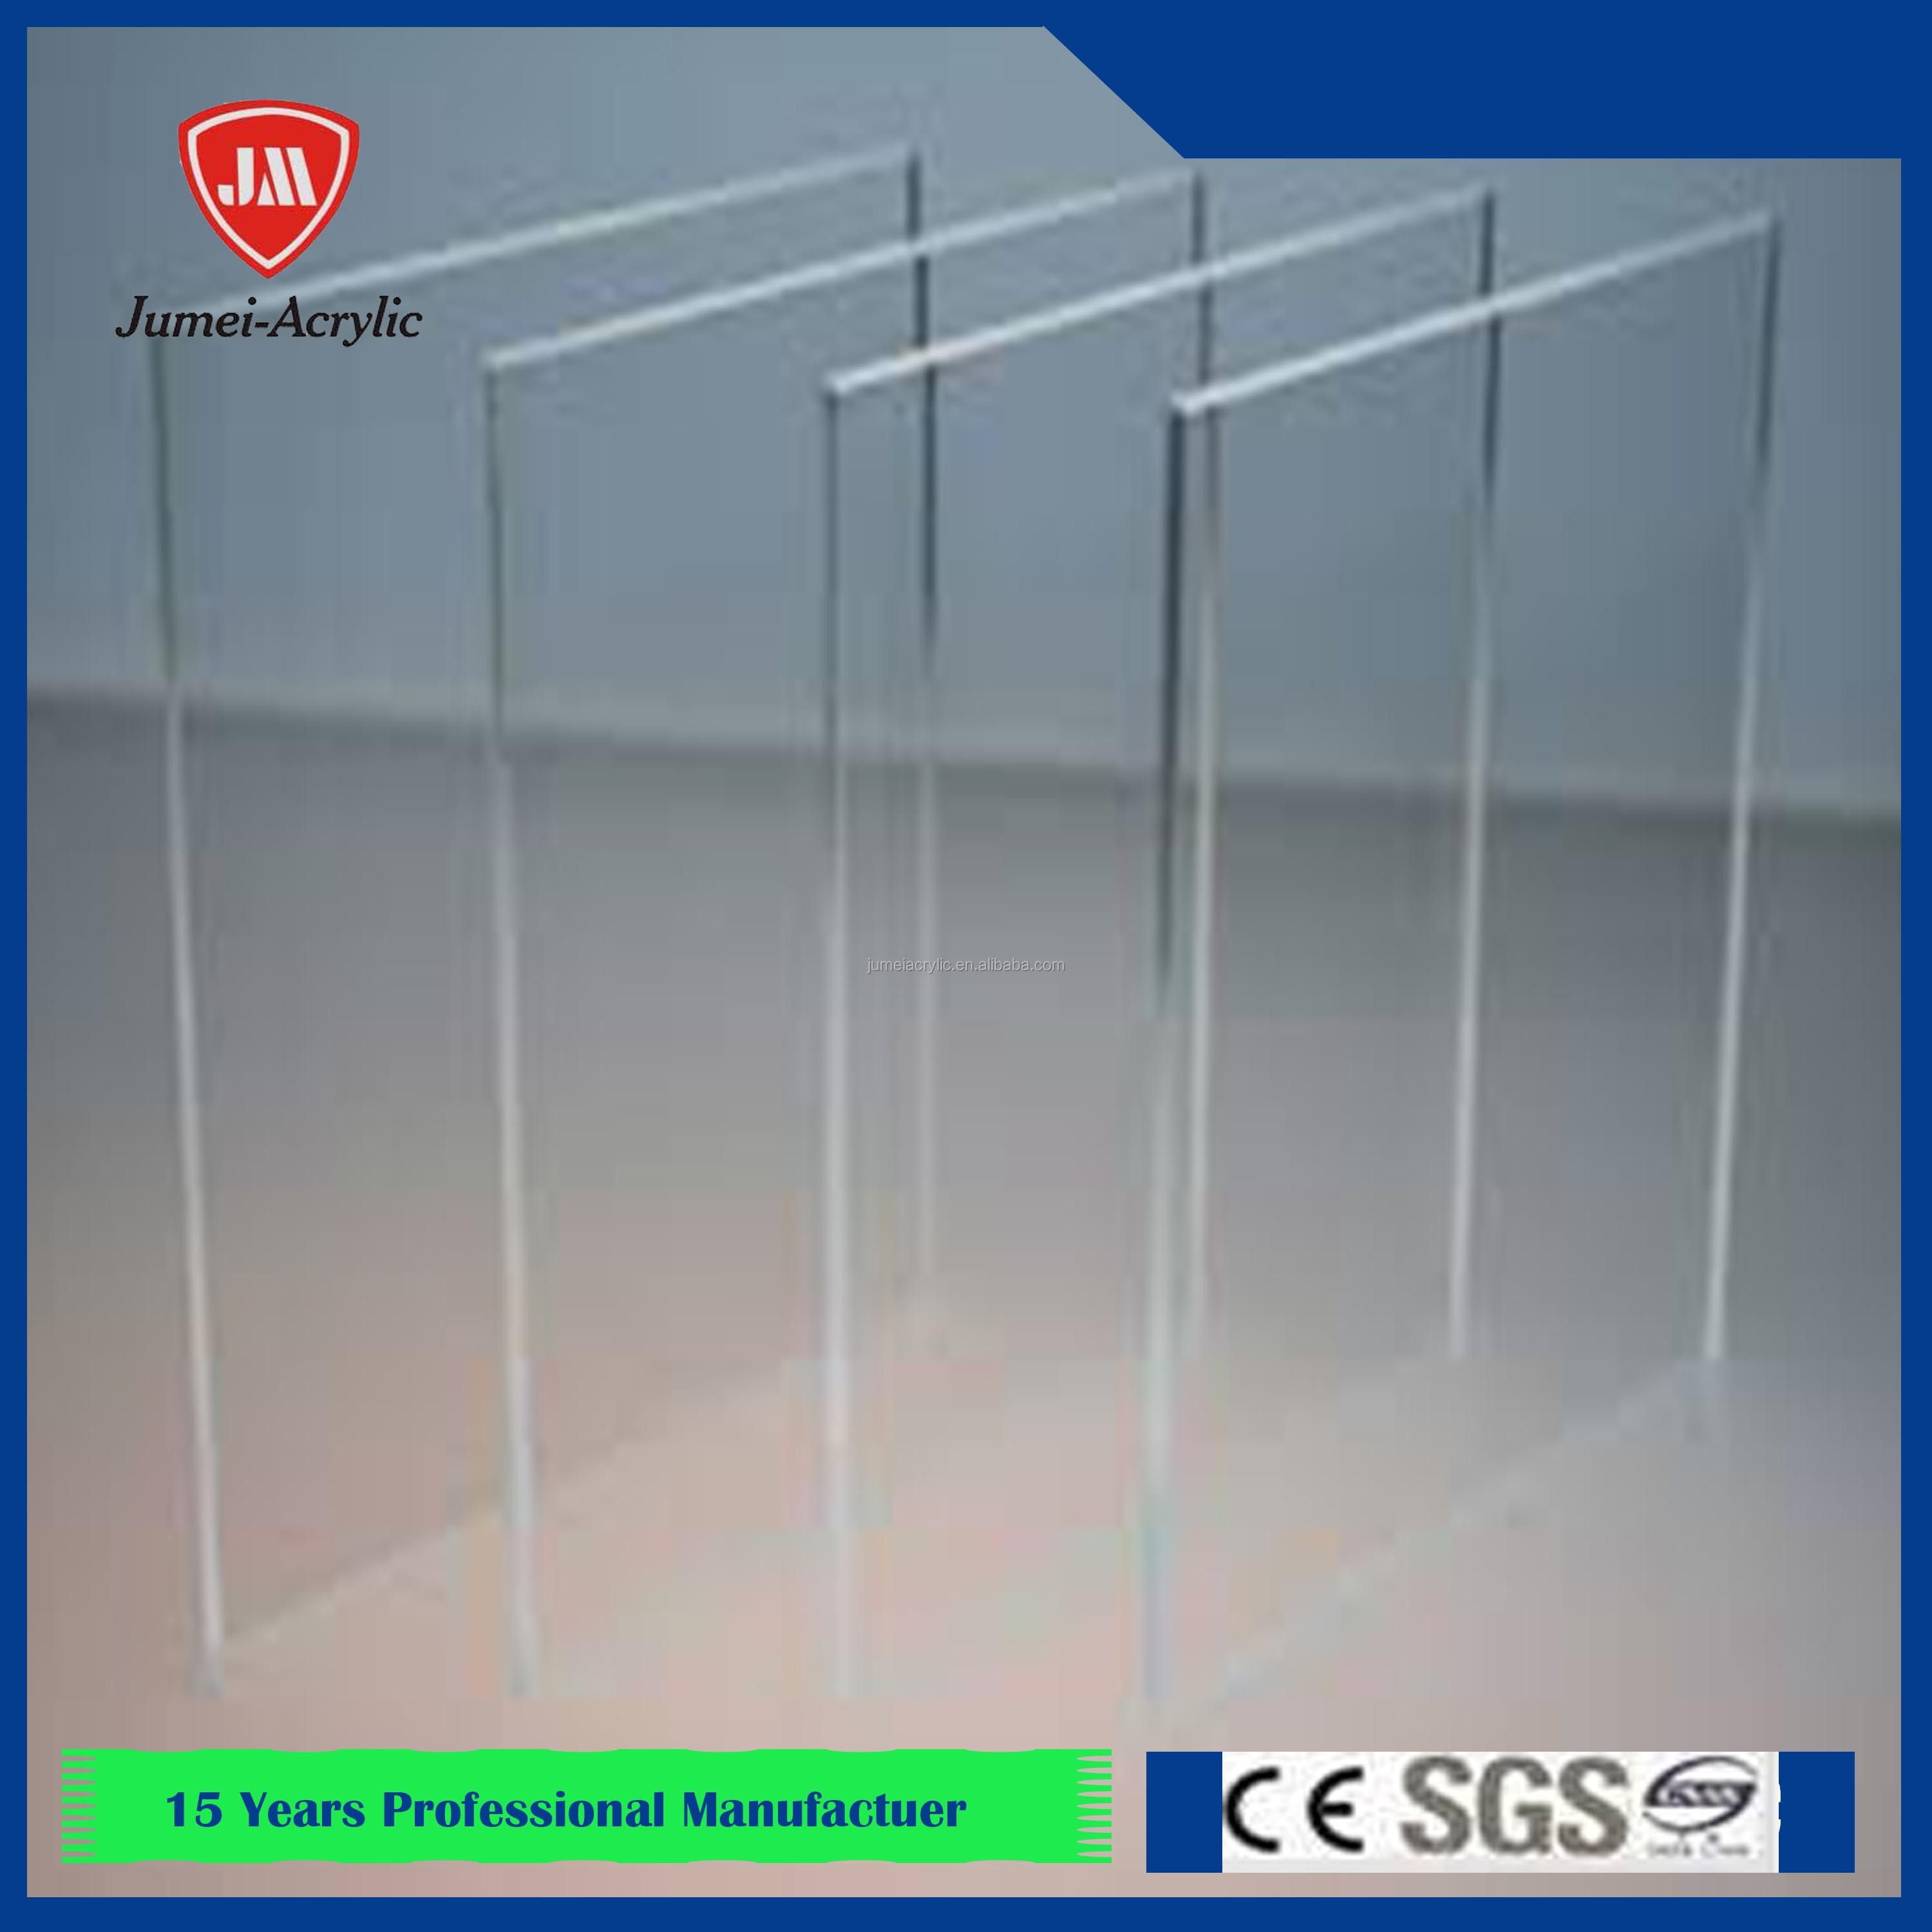 JM CE SGS qualified Various Colored Frosted acrylic sheet Frozen acrylic sheet with good price